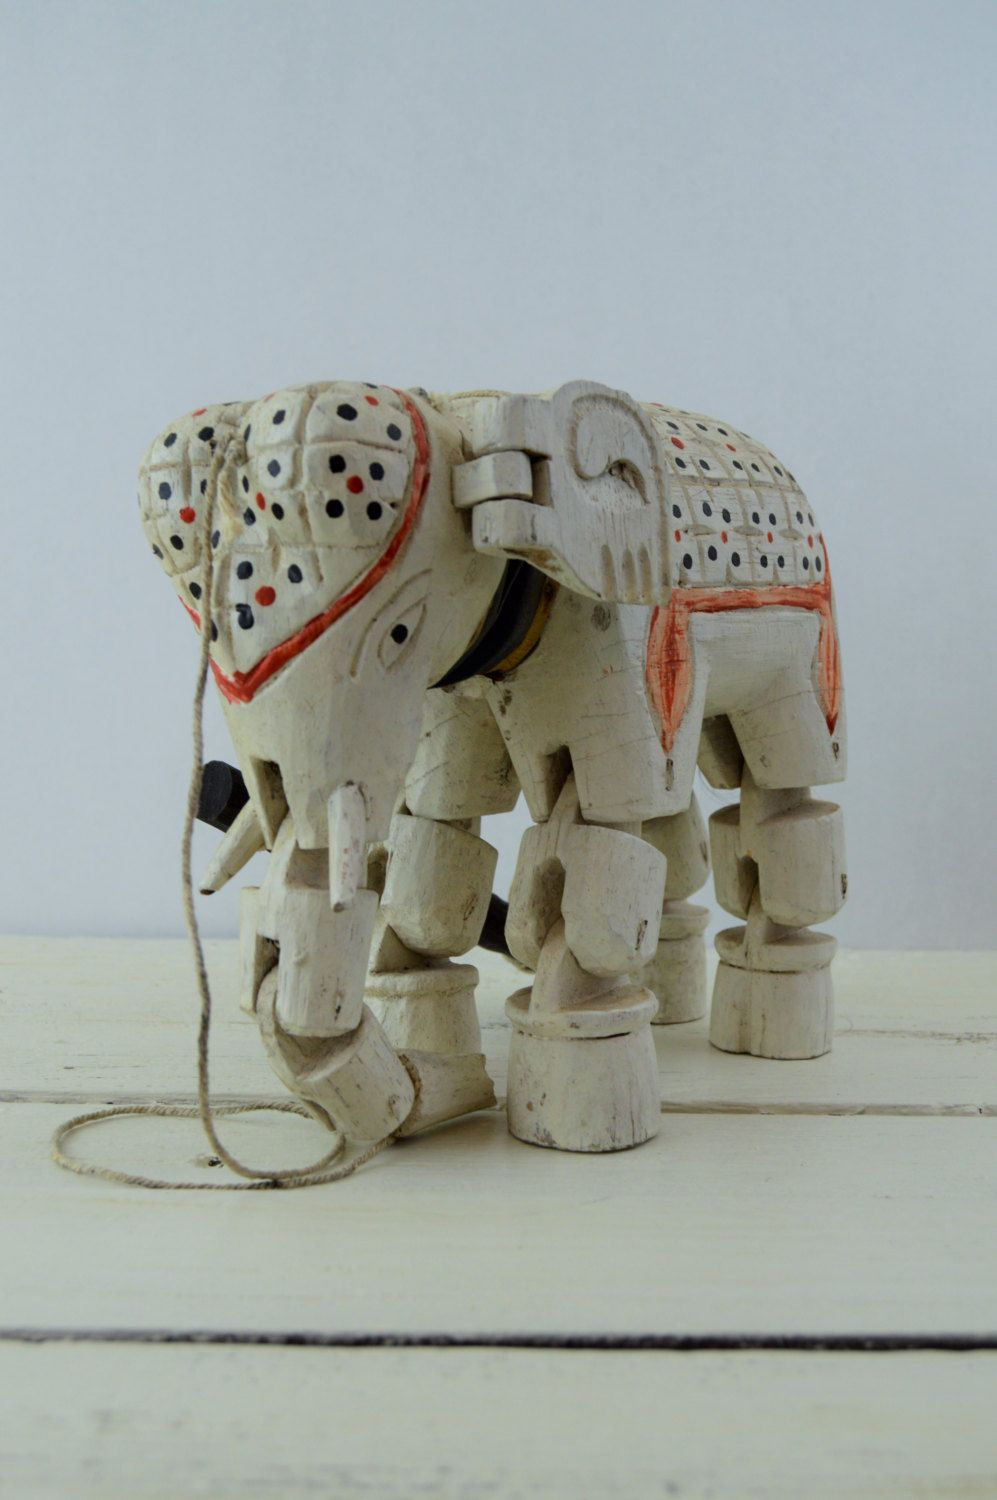 Wooden Marionette Elephant Vintage Wooden Puppet by GenerationUpcycle on Etsy